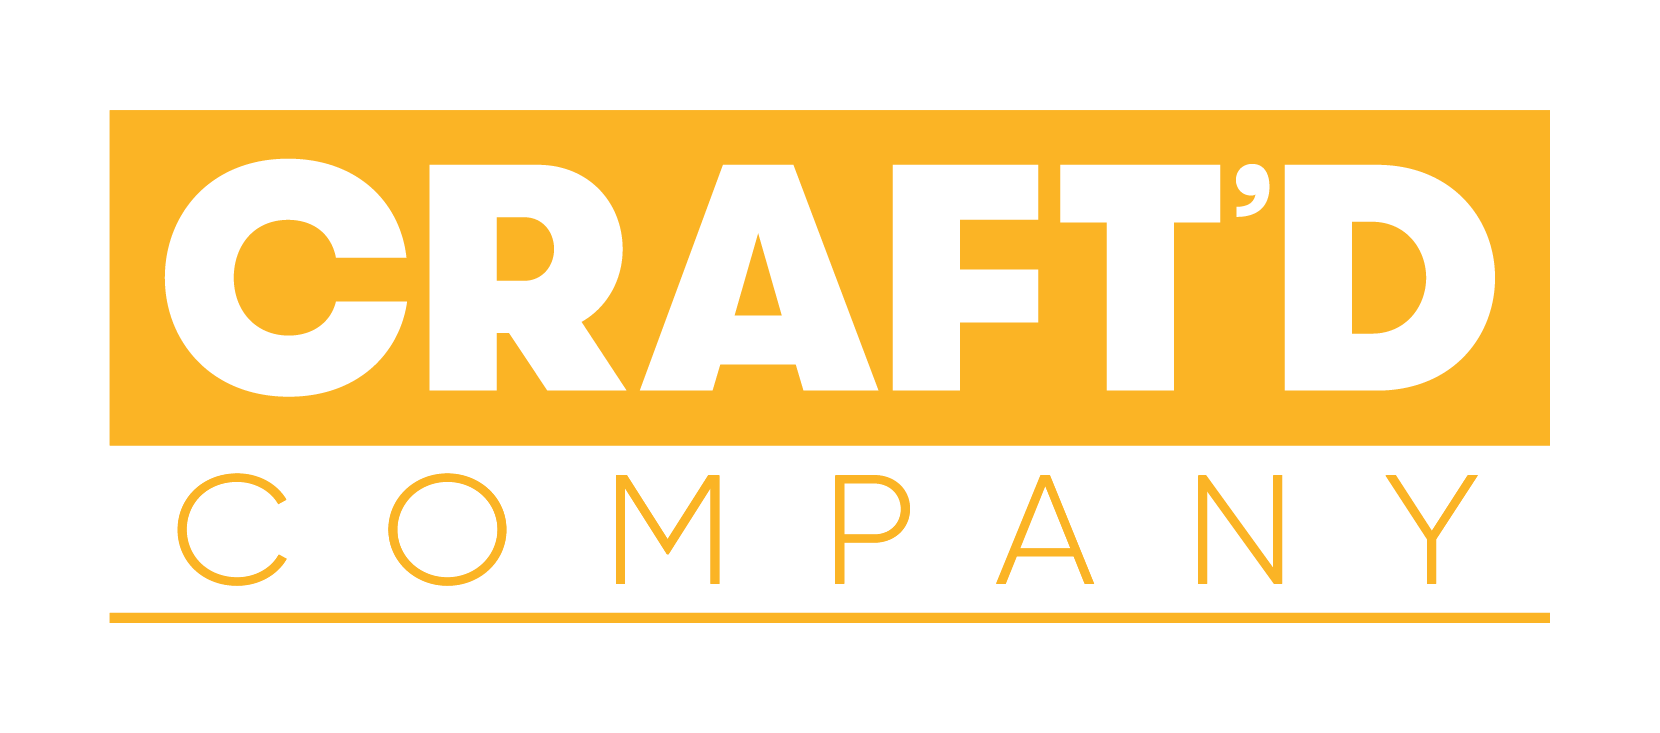 Craft'd Company